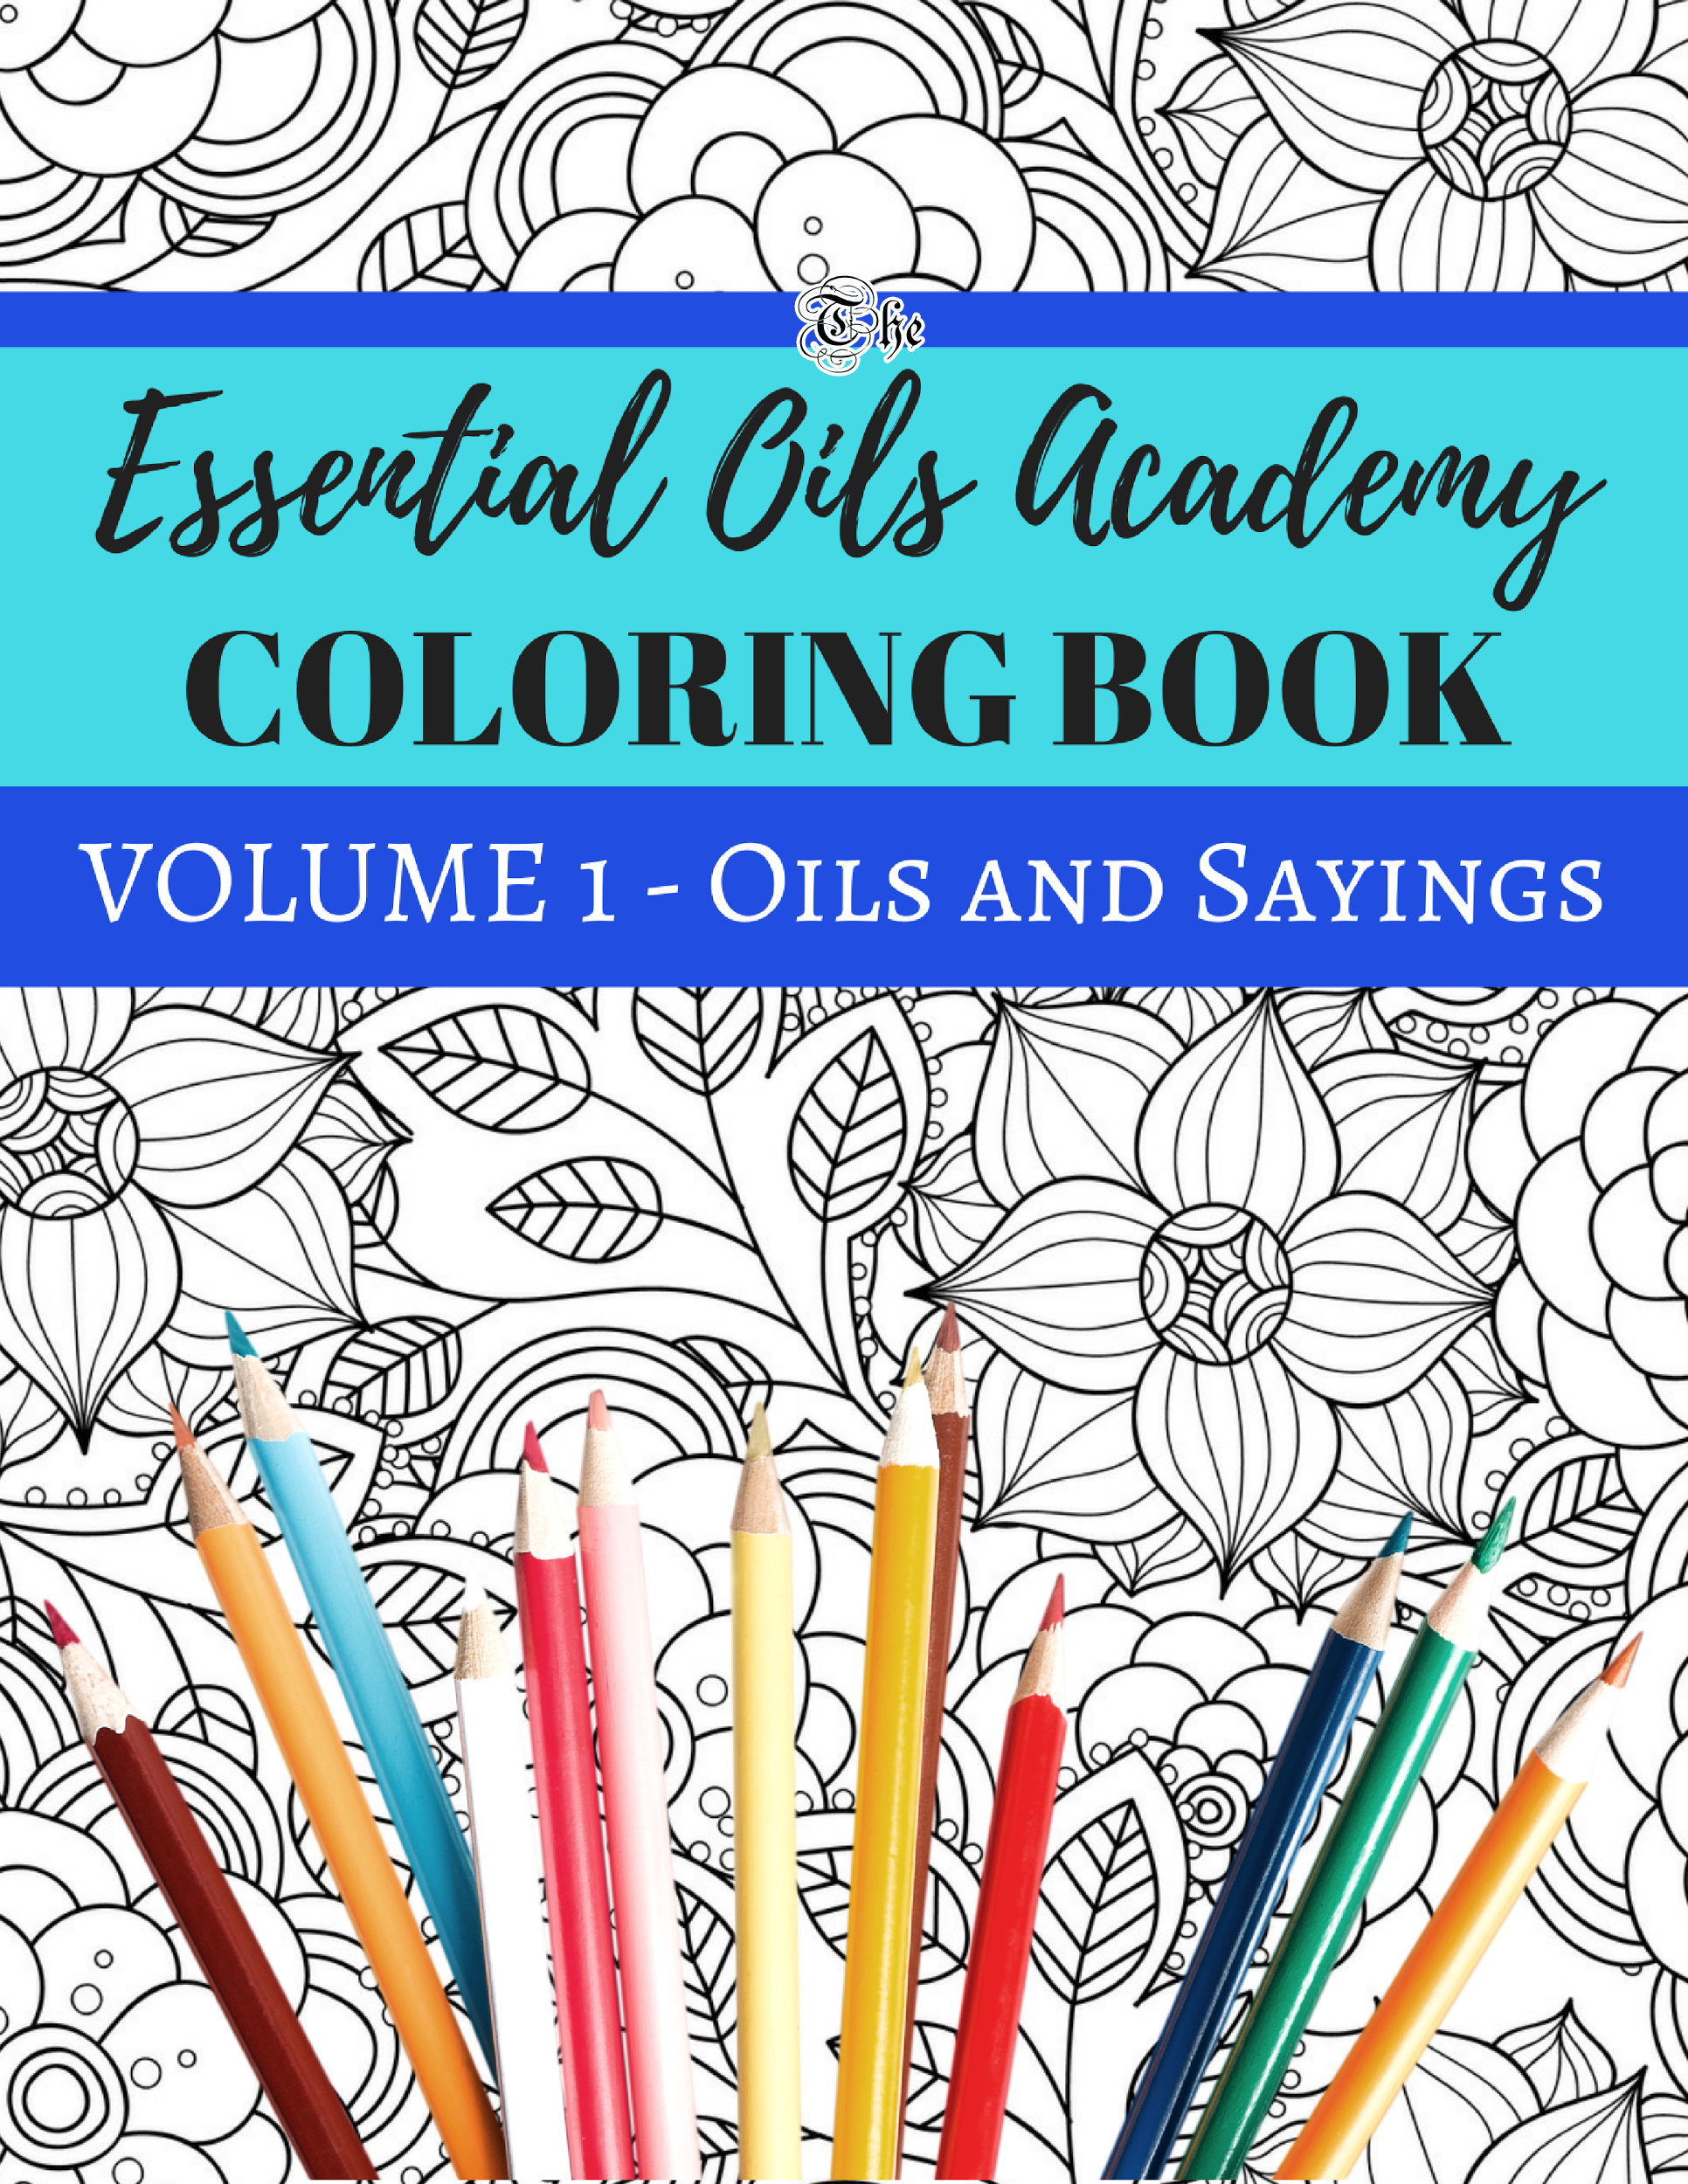 COLORING BOOK - Essential Oils Academy